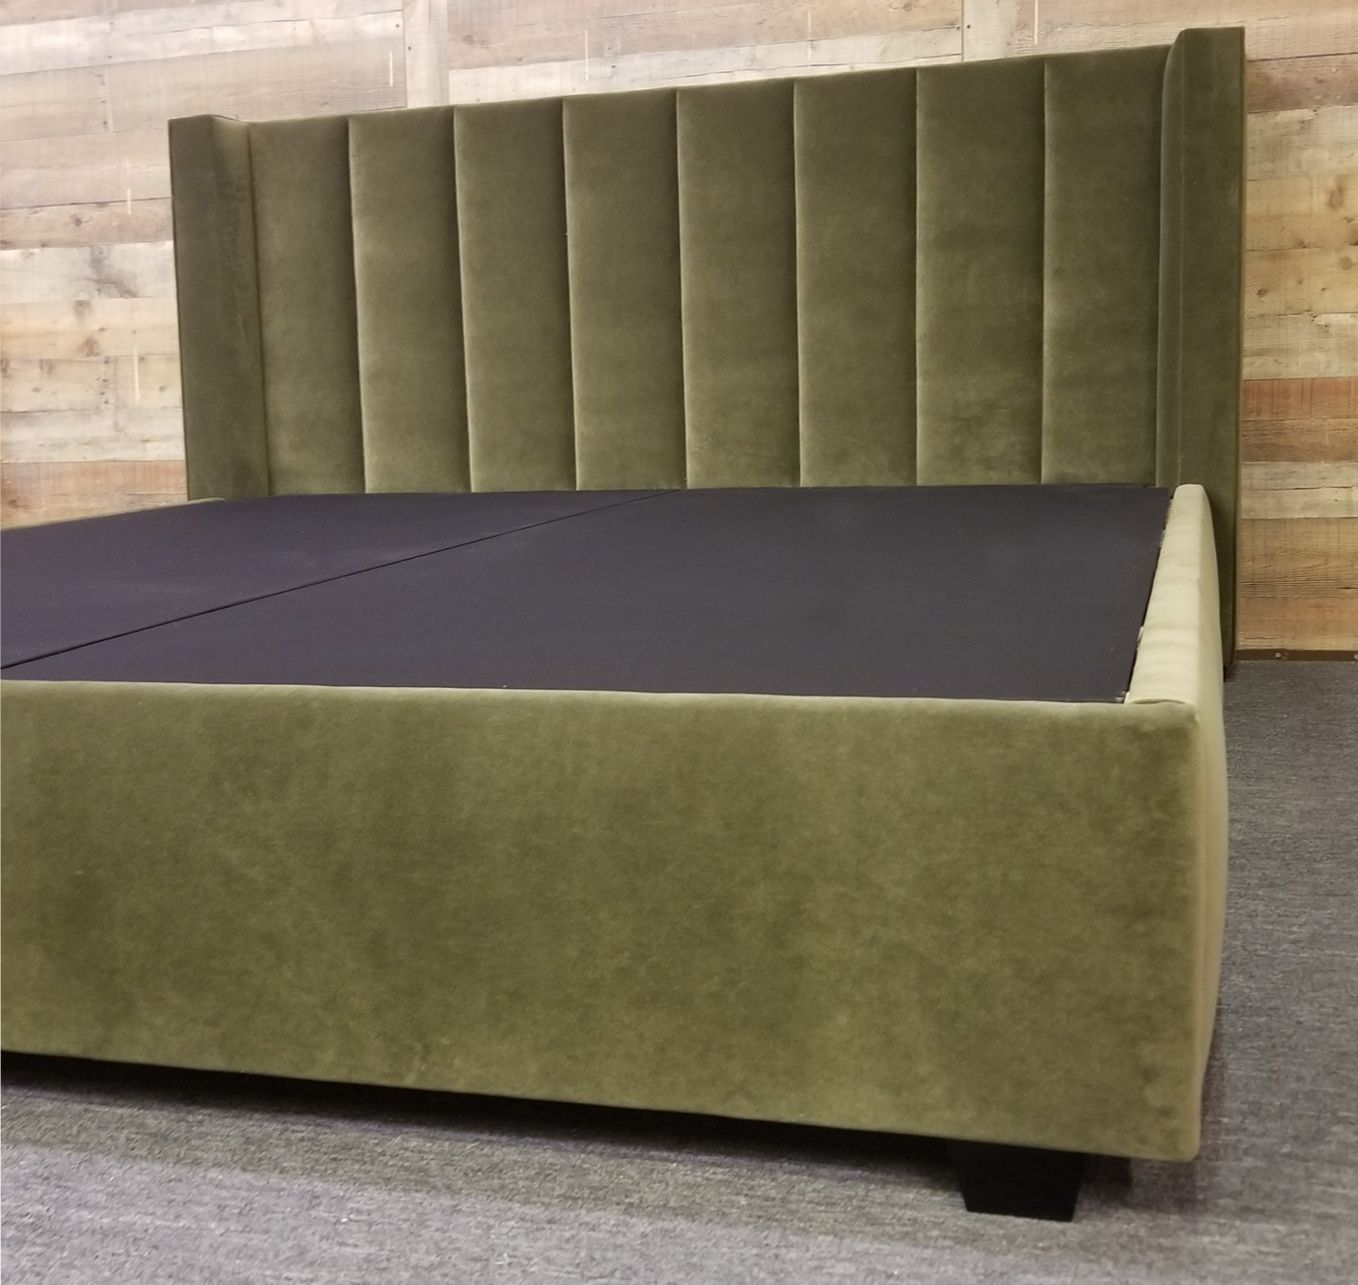 Upholstered In Olive Green Velvet Channel Detail With Wingbac And